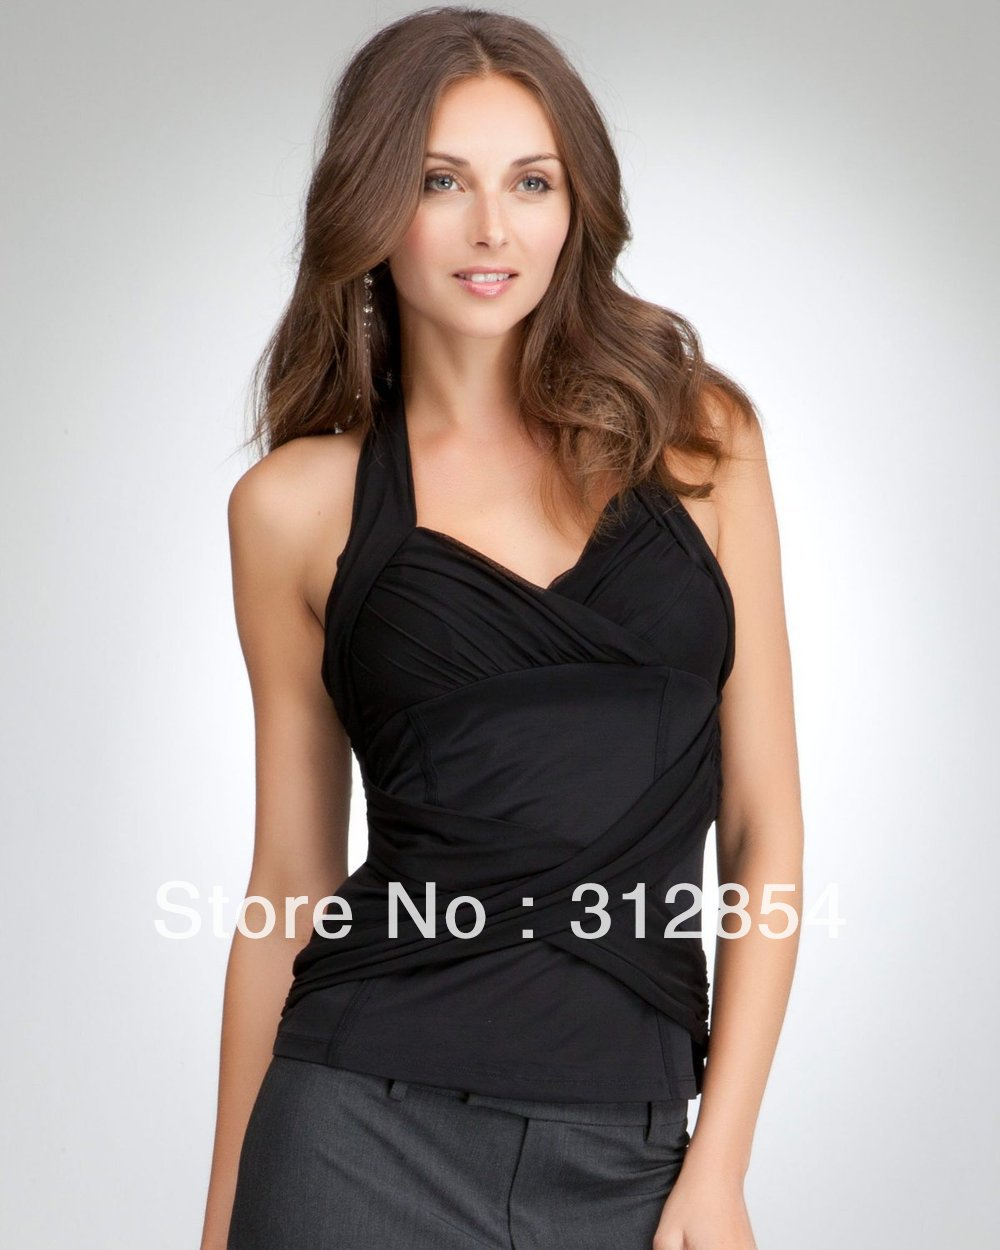 Size S M L XL plus size Black font b color b font womens sexy new To Get The JoyMii Porn Passwords For Free Just Click Here Prove Login